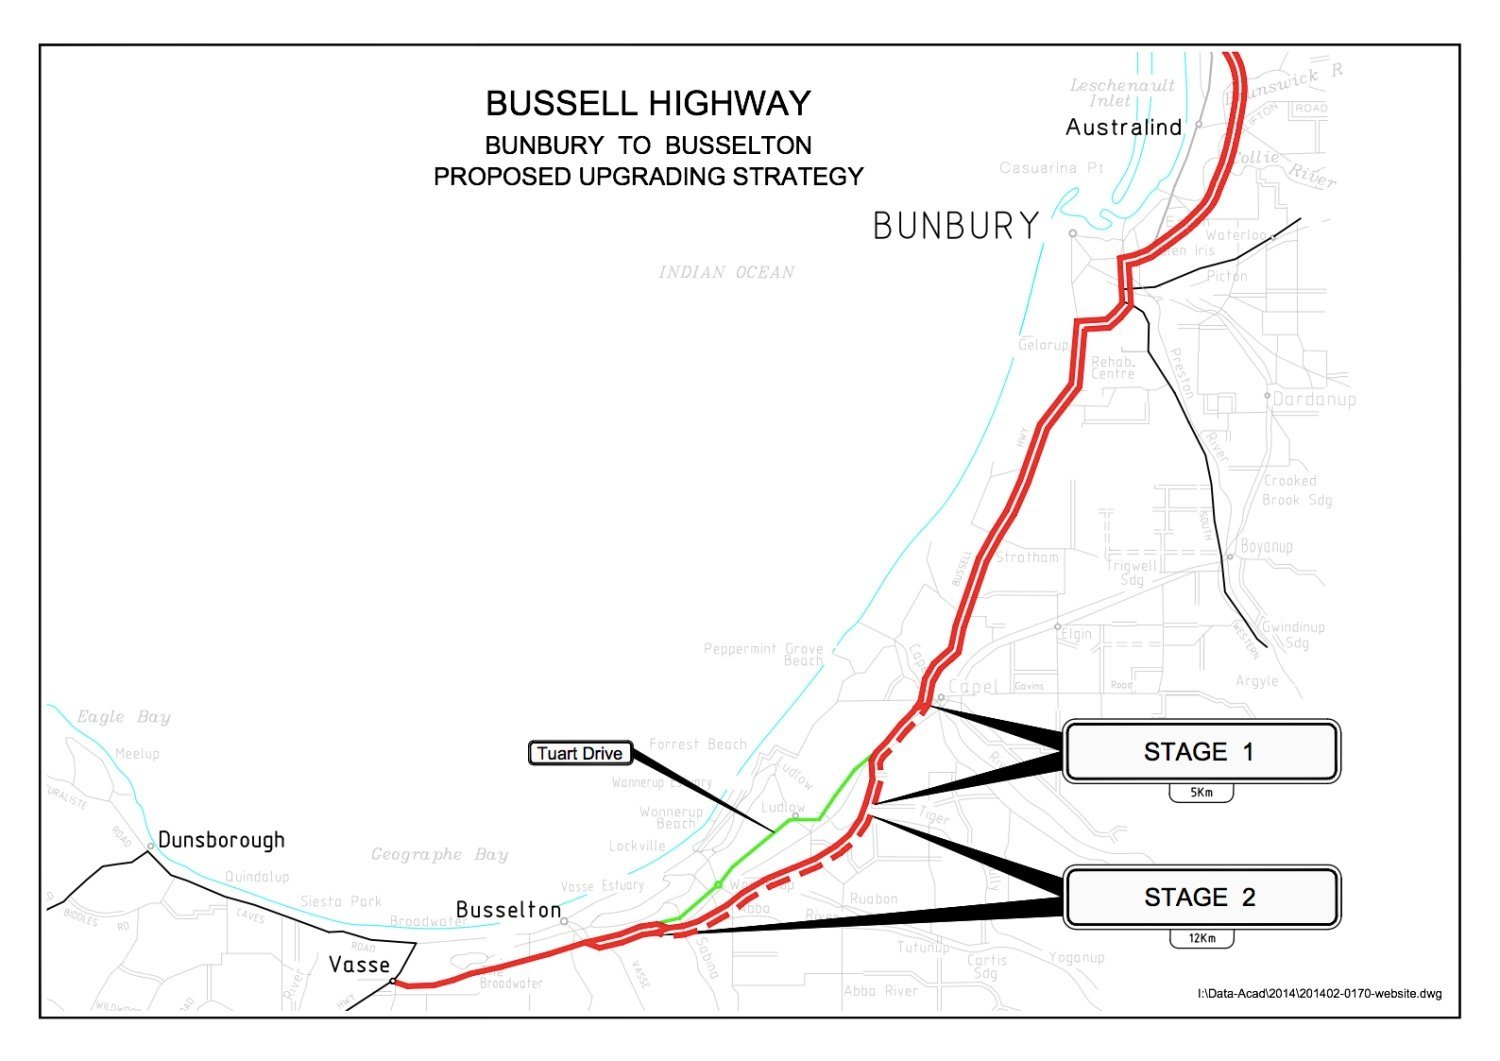 Bussell Highway - proposed map